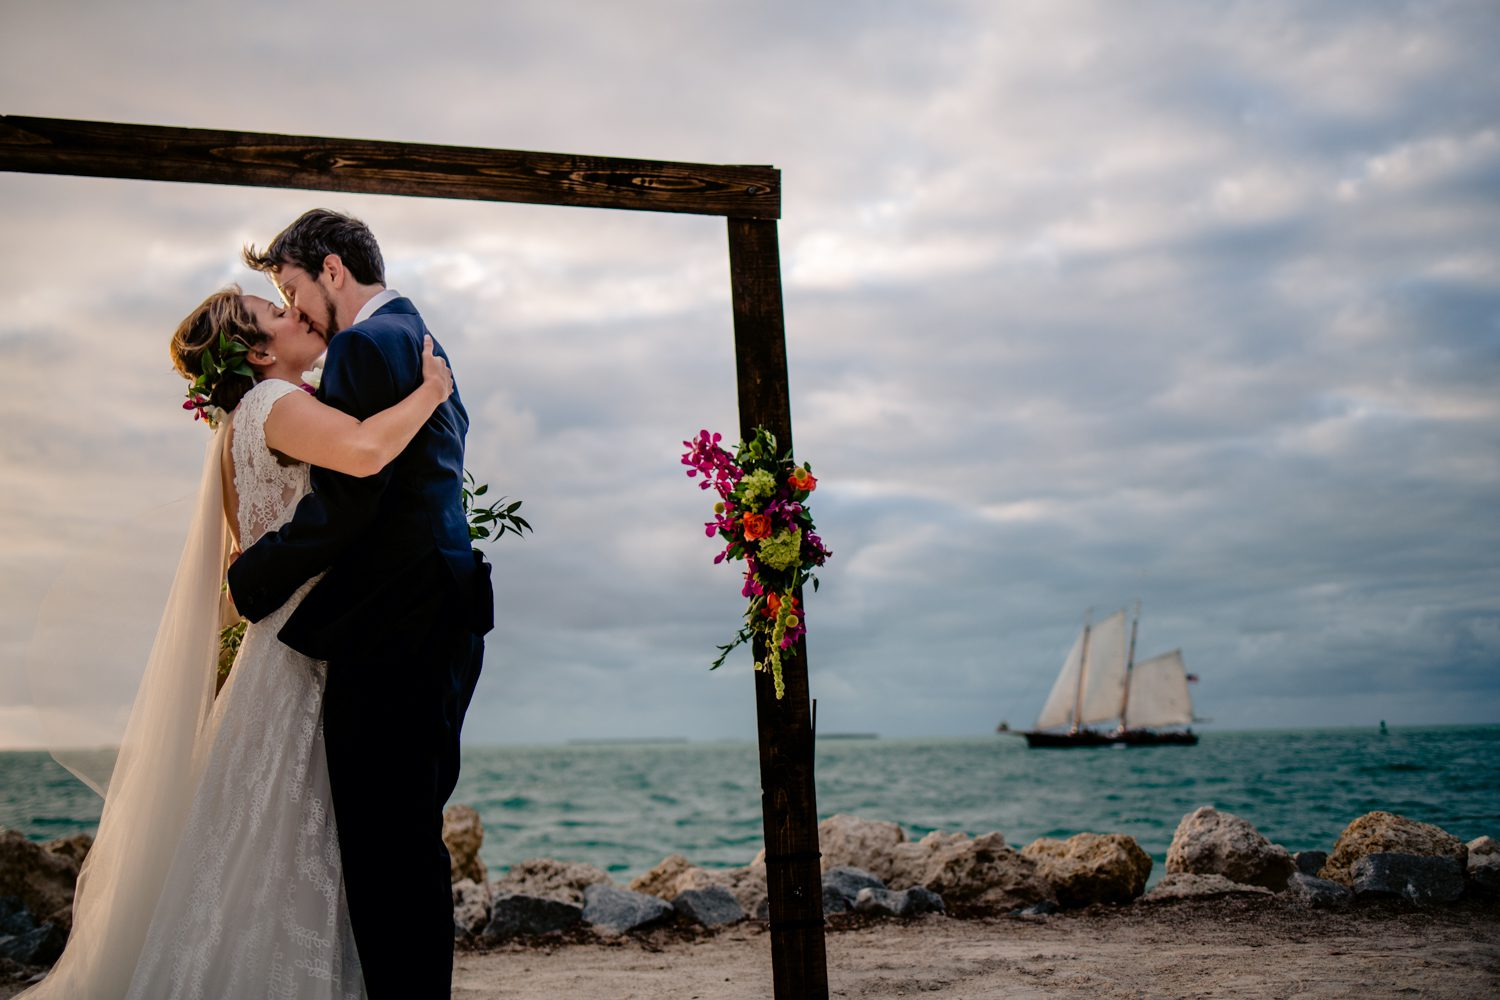 Bride and groom kissing after saying vows at fort zachary taylor